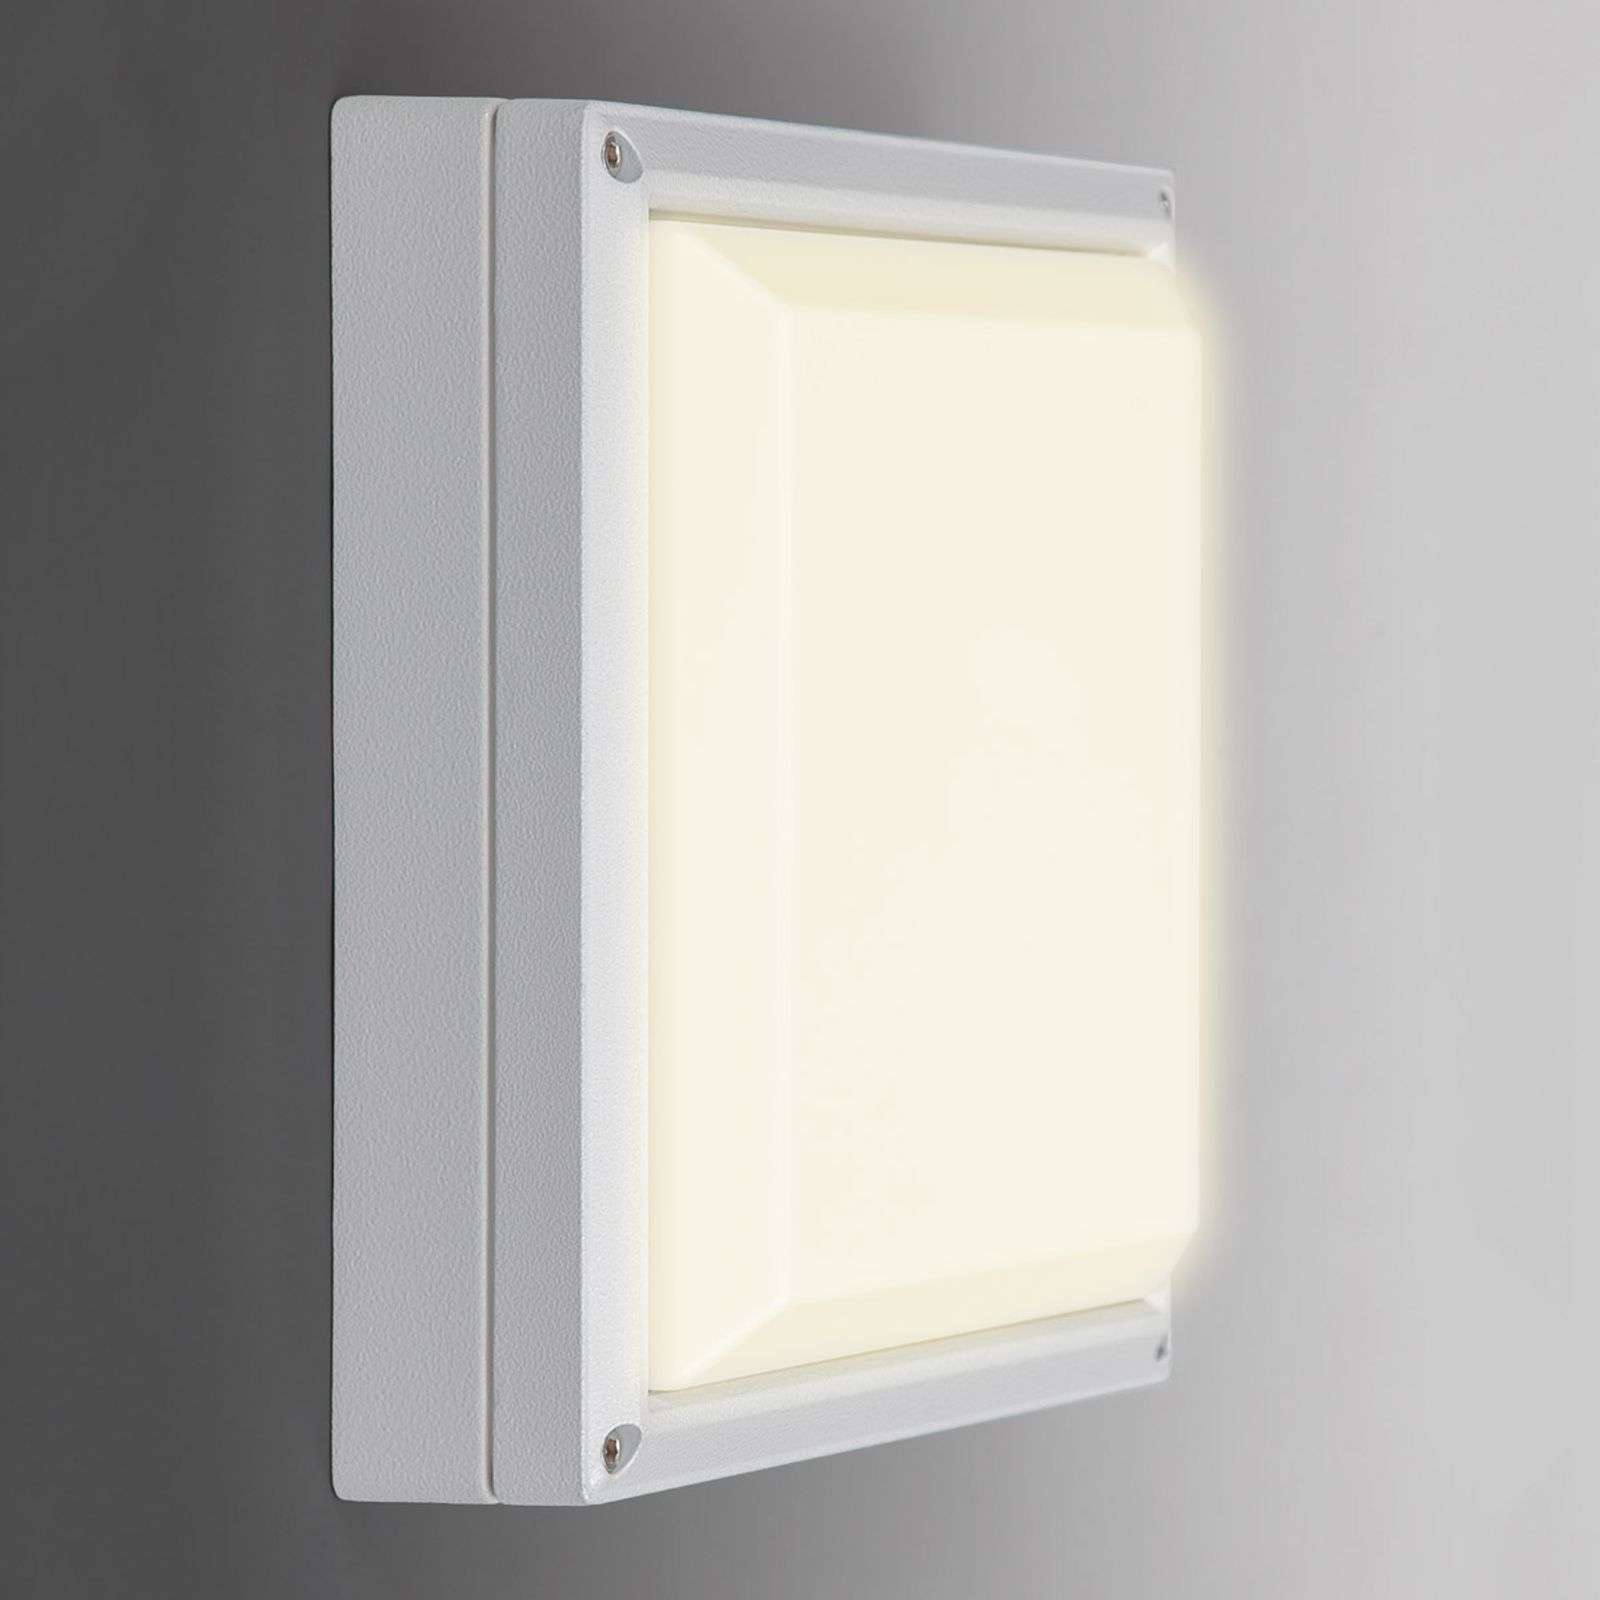 SUN 11 - applique LED 13W, bianca 3K